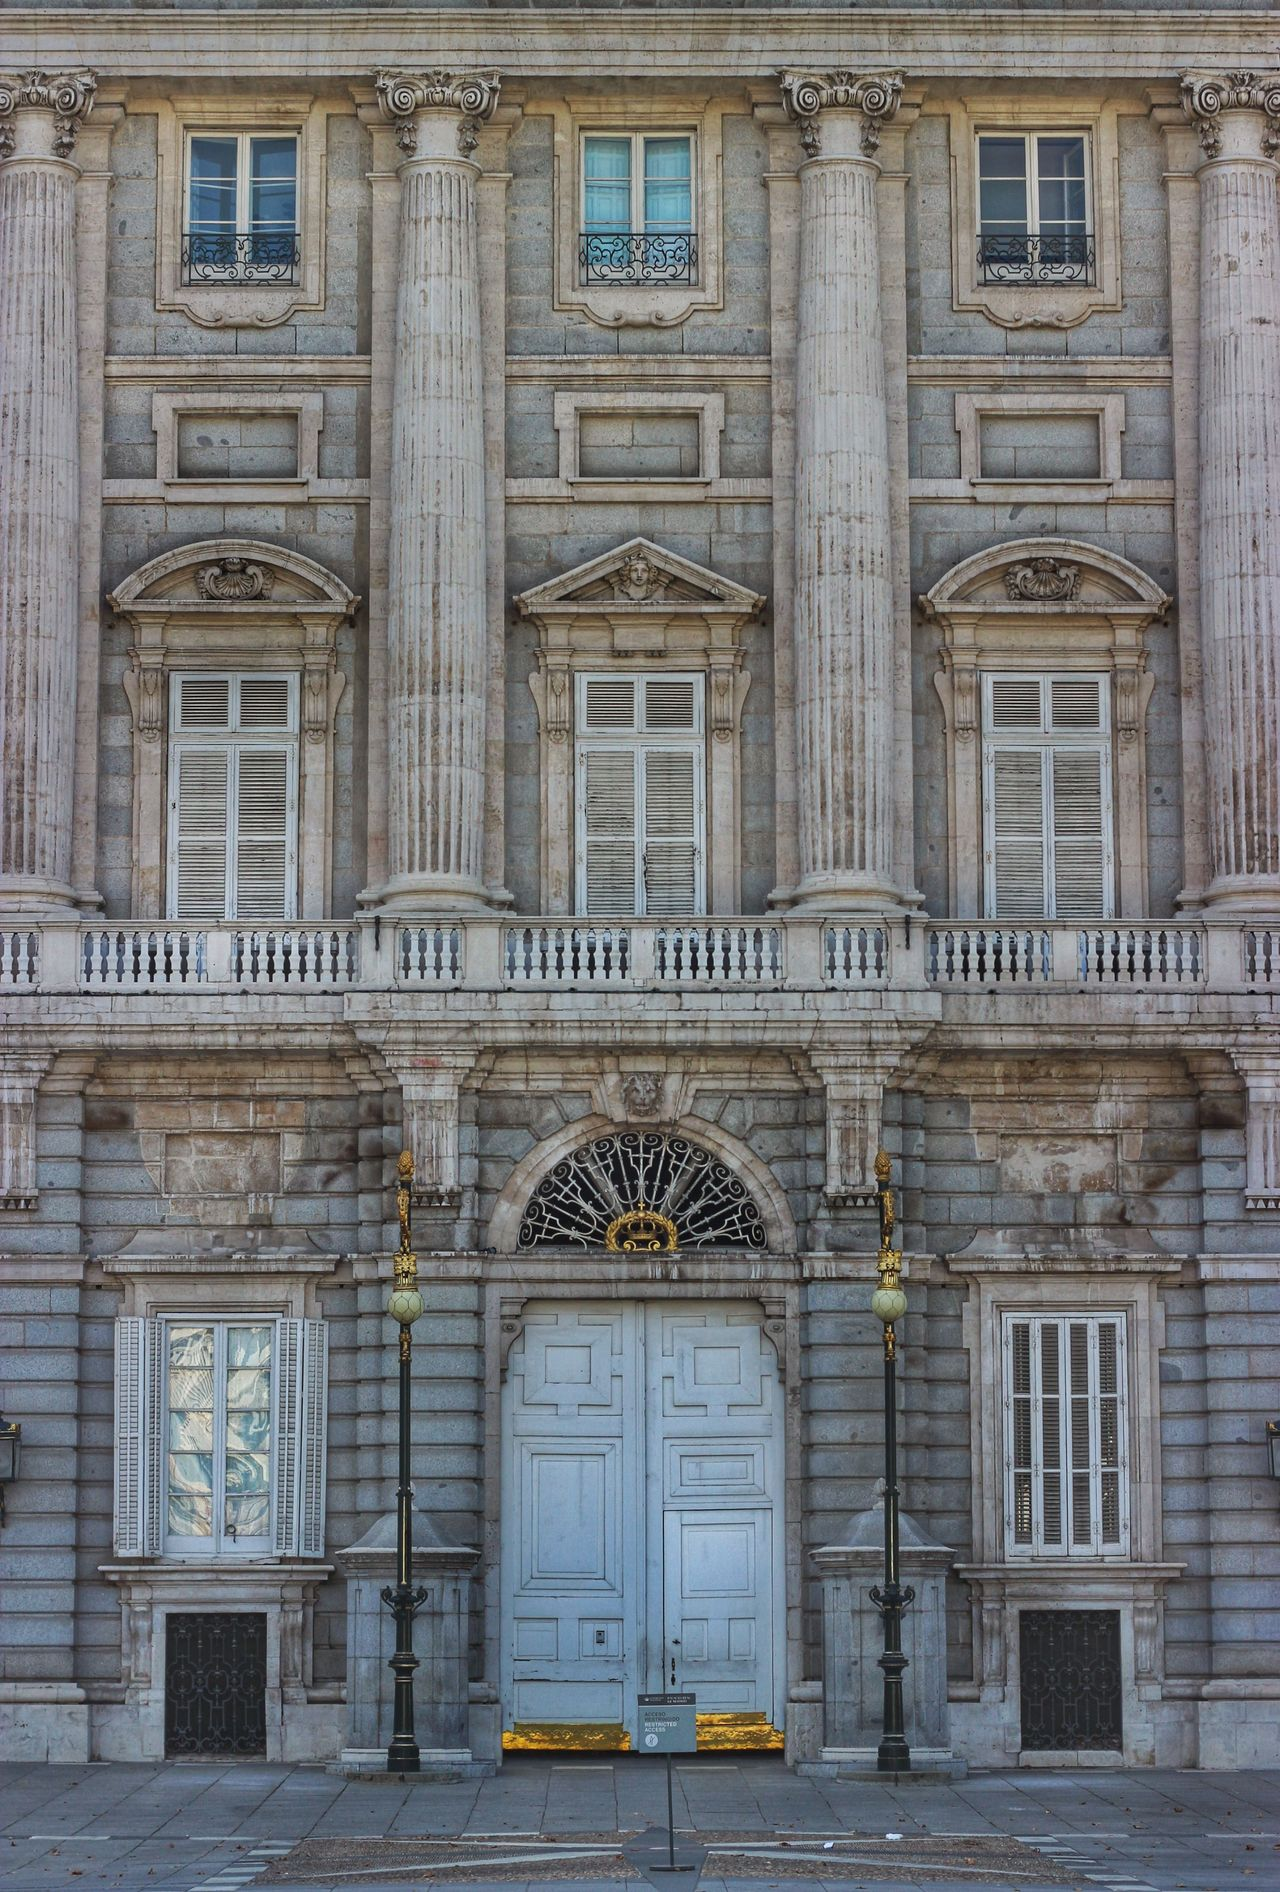 Palacio Real Madrid SPAIN Jorge L. Taking Photos Canon EOS 600D DSLR Historical Monuments Españoles Y Sus Fotos Architecture Cityscapes Composition Famous Place History No People Windows And Doors Urban Geometry